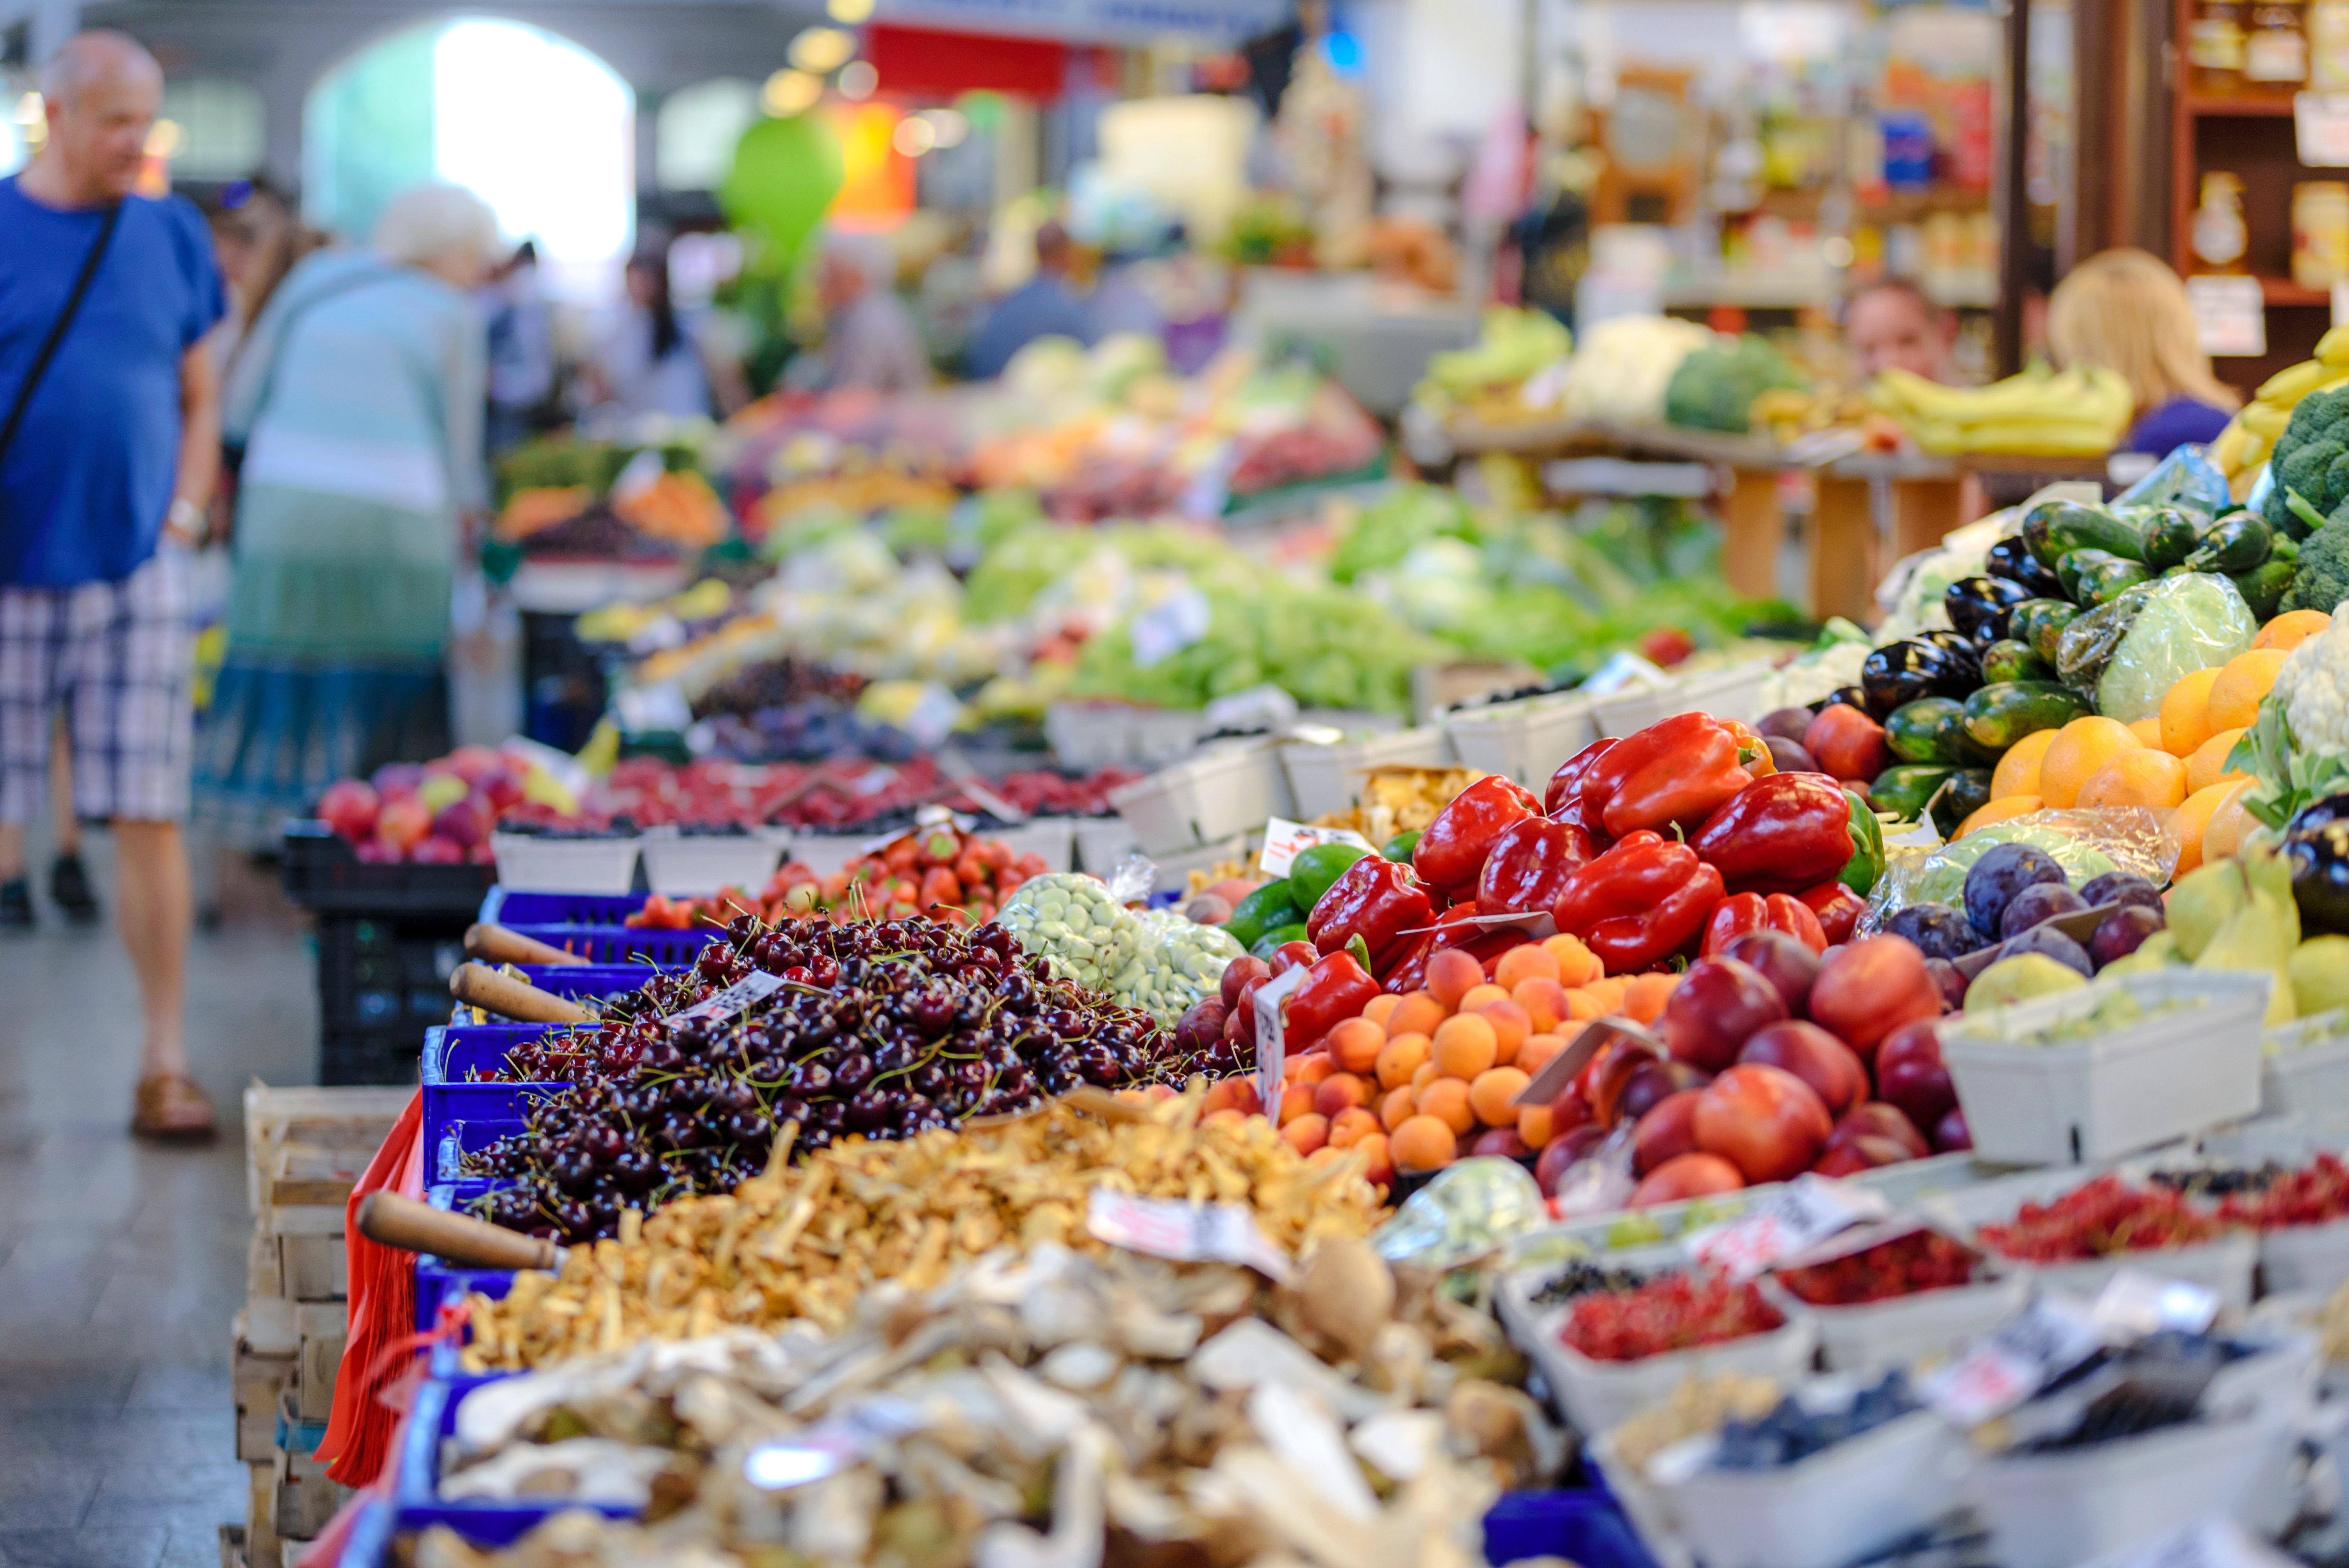 Vegetables Stall, Sale, Sell, Sales, Retail, HQ Photo